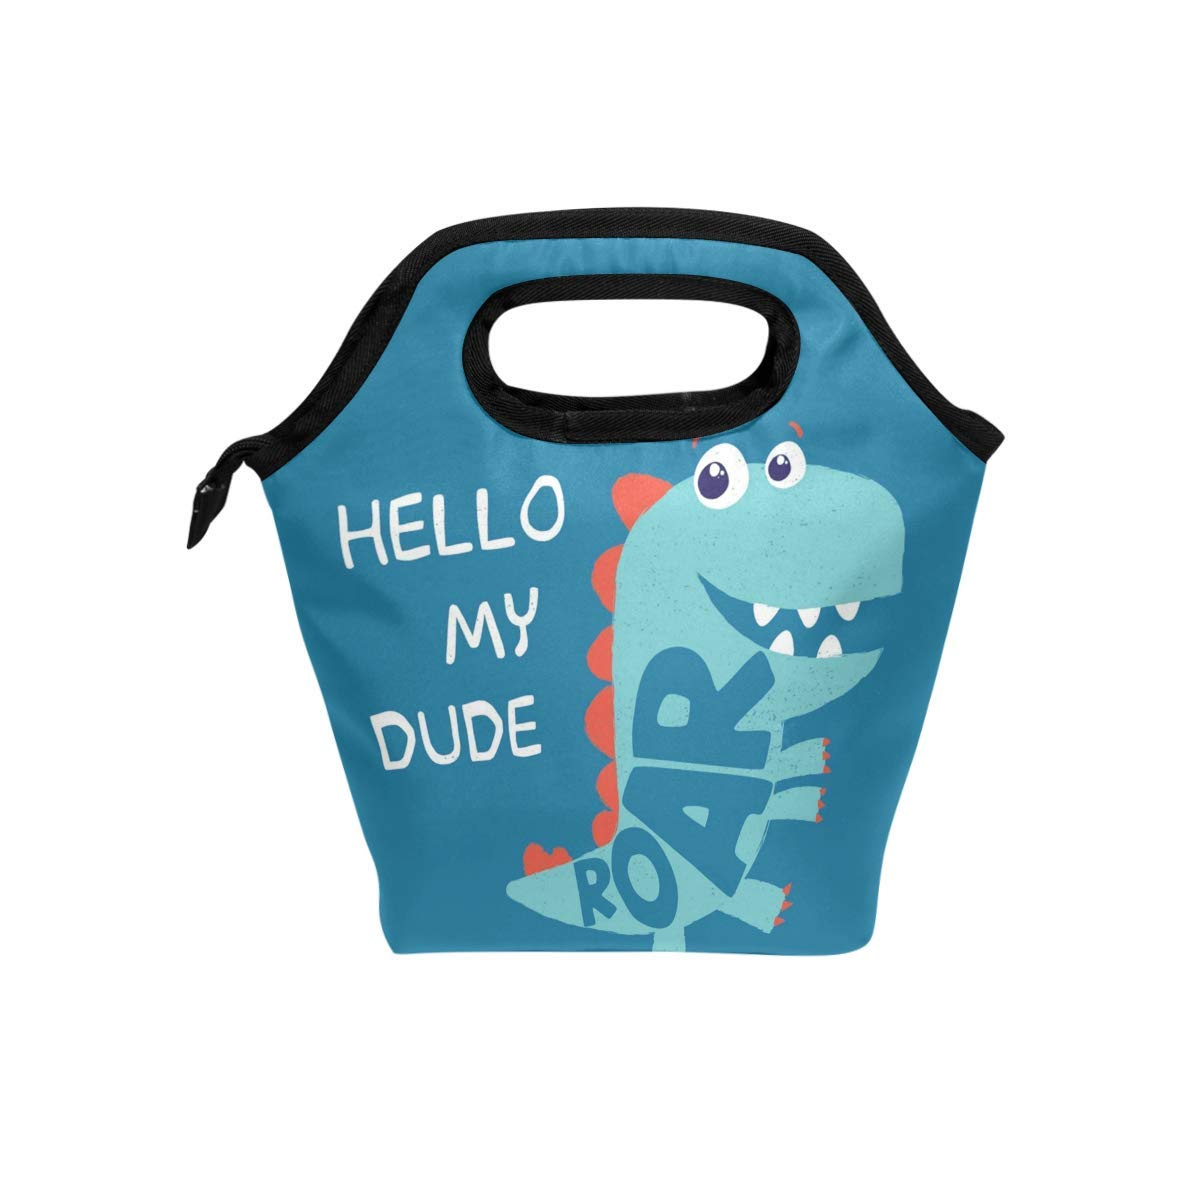 3faeaa33071d ALARGE Lunch Bag Cute Sea Animal Crocodile Insulated Reusable Lunch Box  Portable Lunch Tote Bag Meal Bag Ice Pack for Kids Boys Girls Adult Men  Women